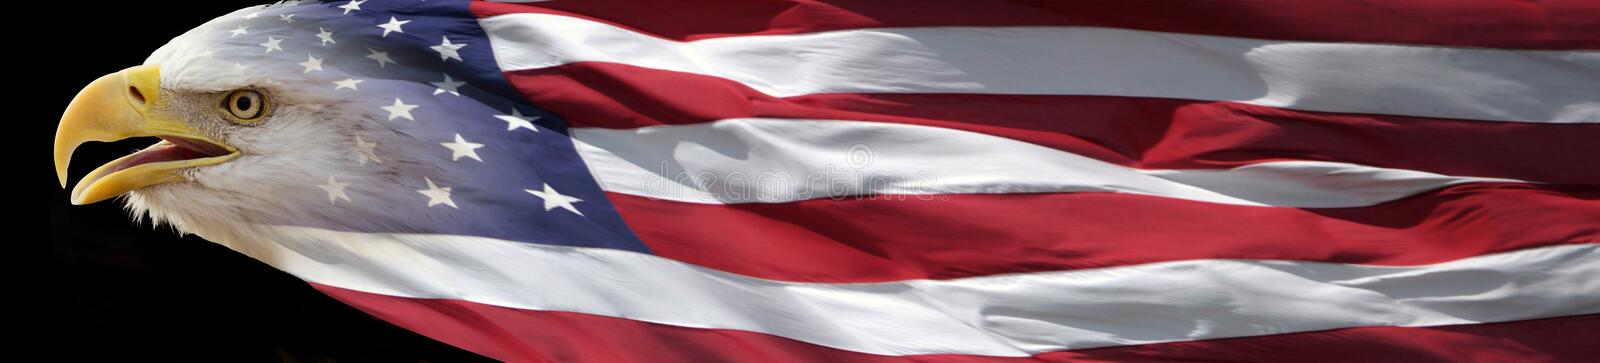 Bald Eagle and American flag banner stock photos